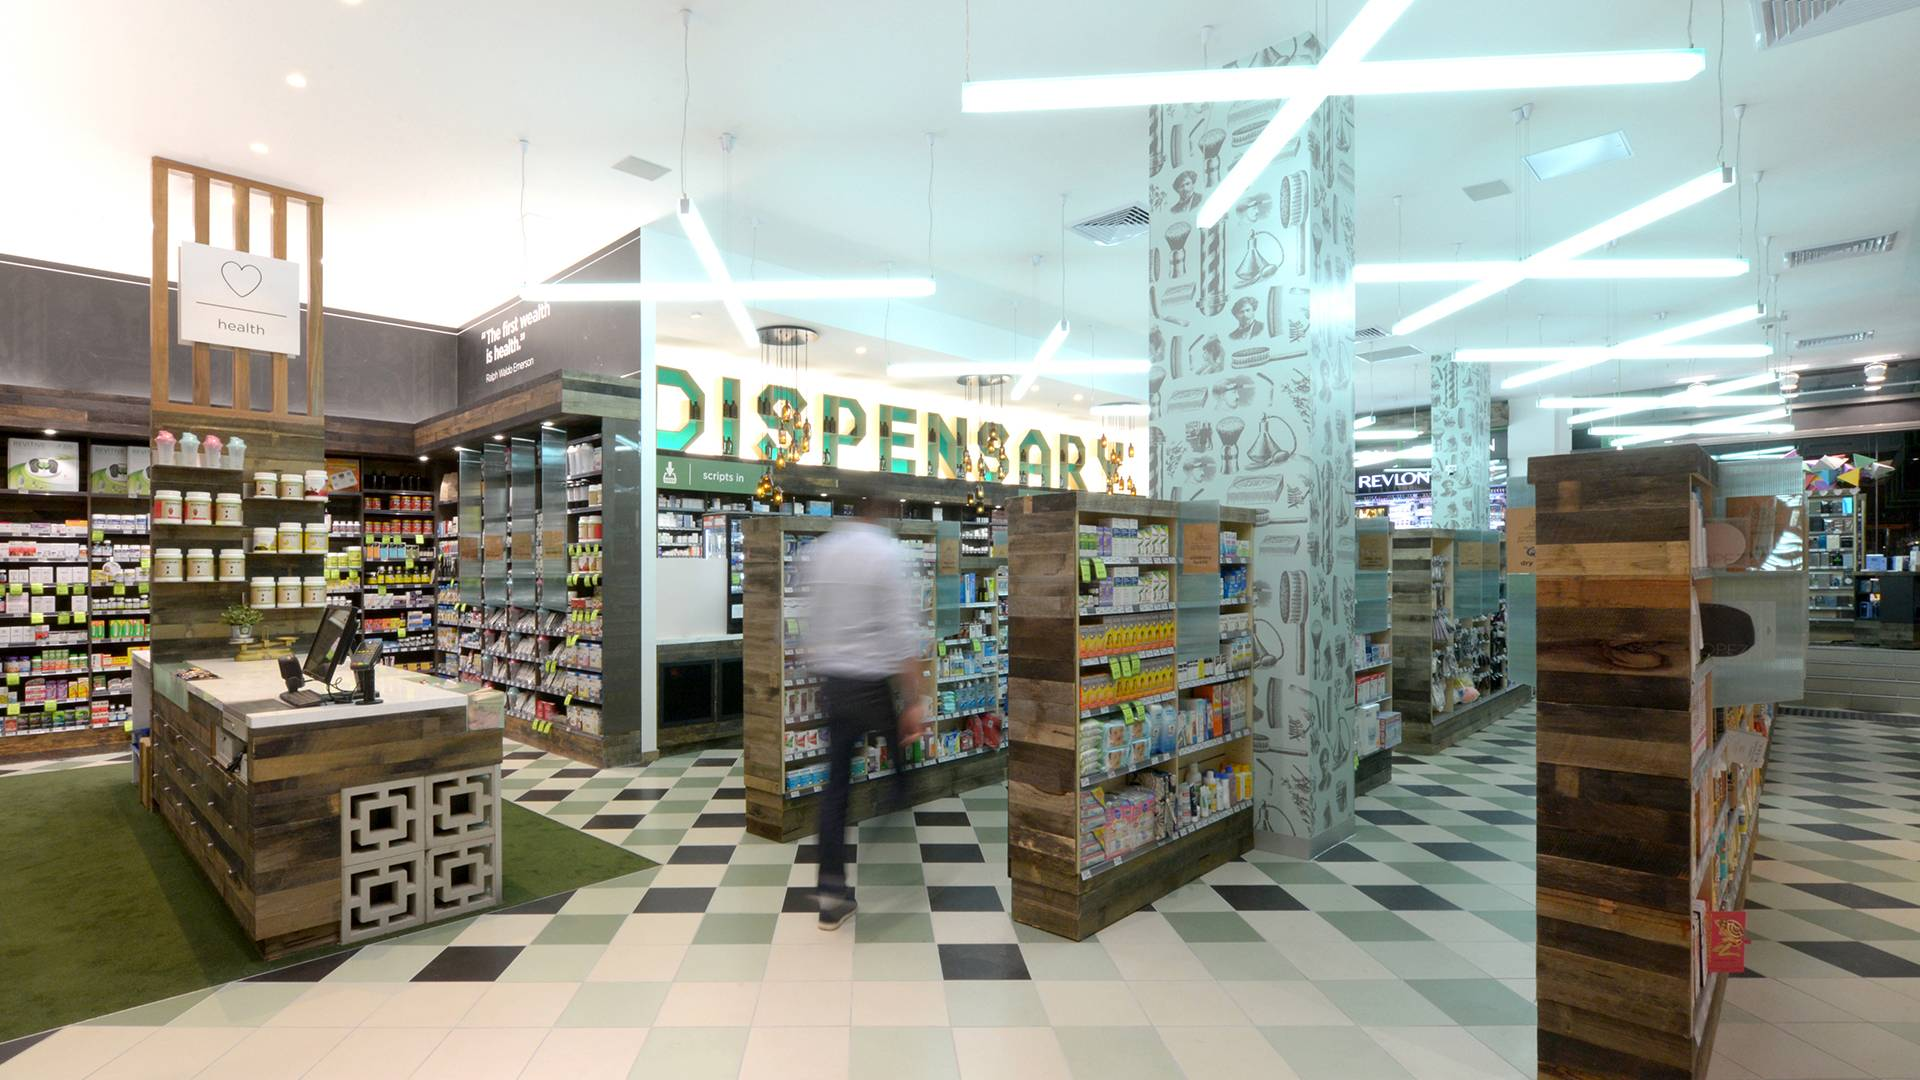 Whites Dispensary